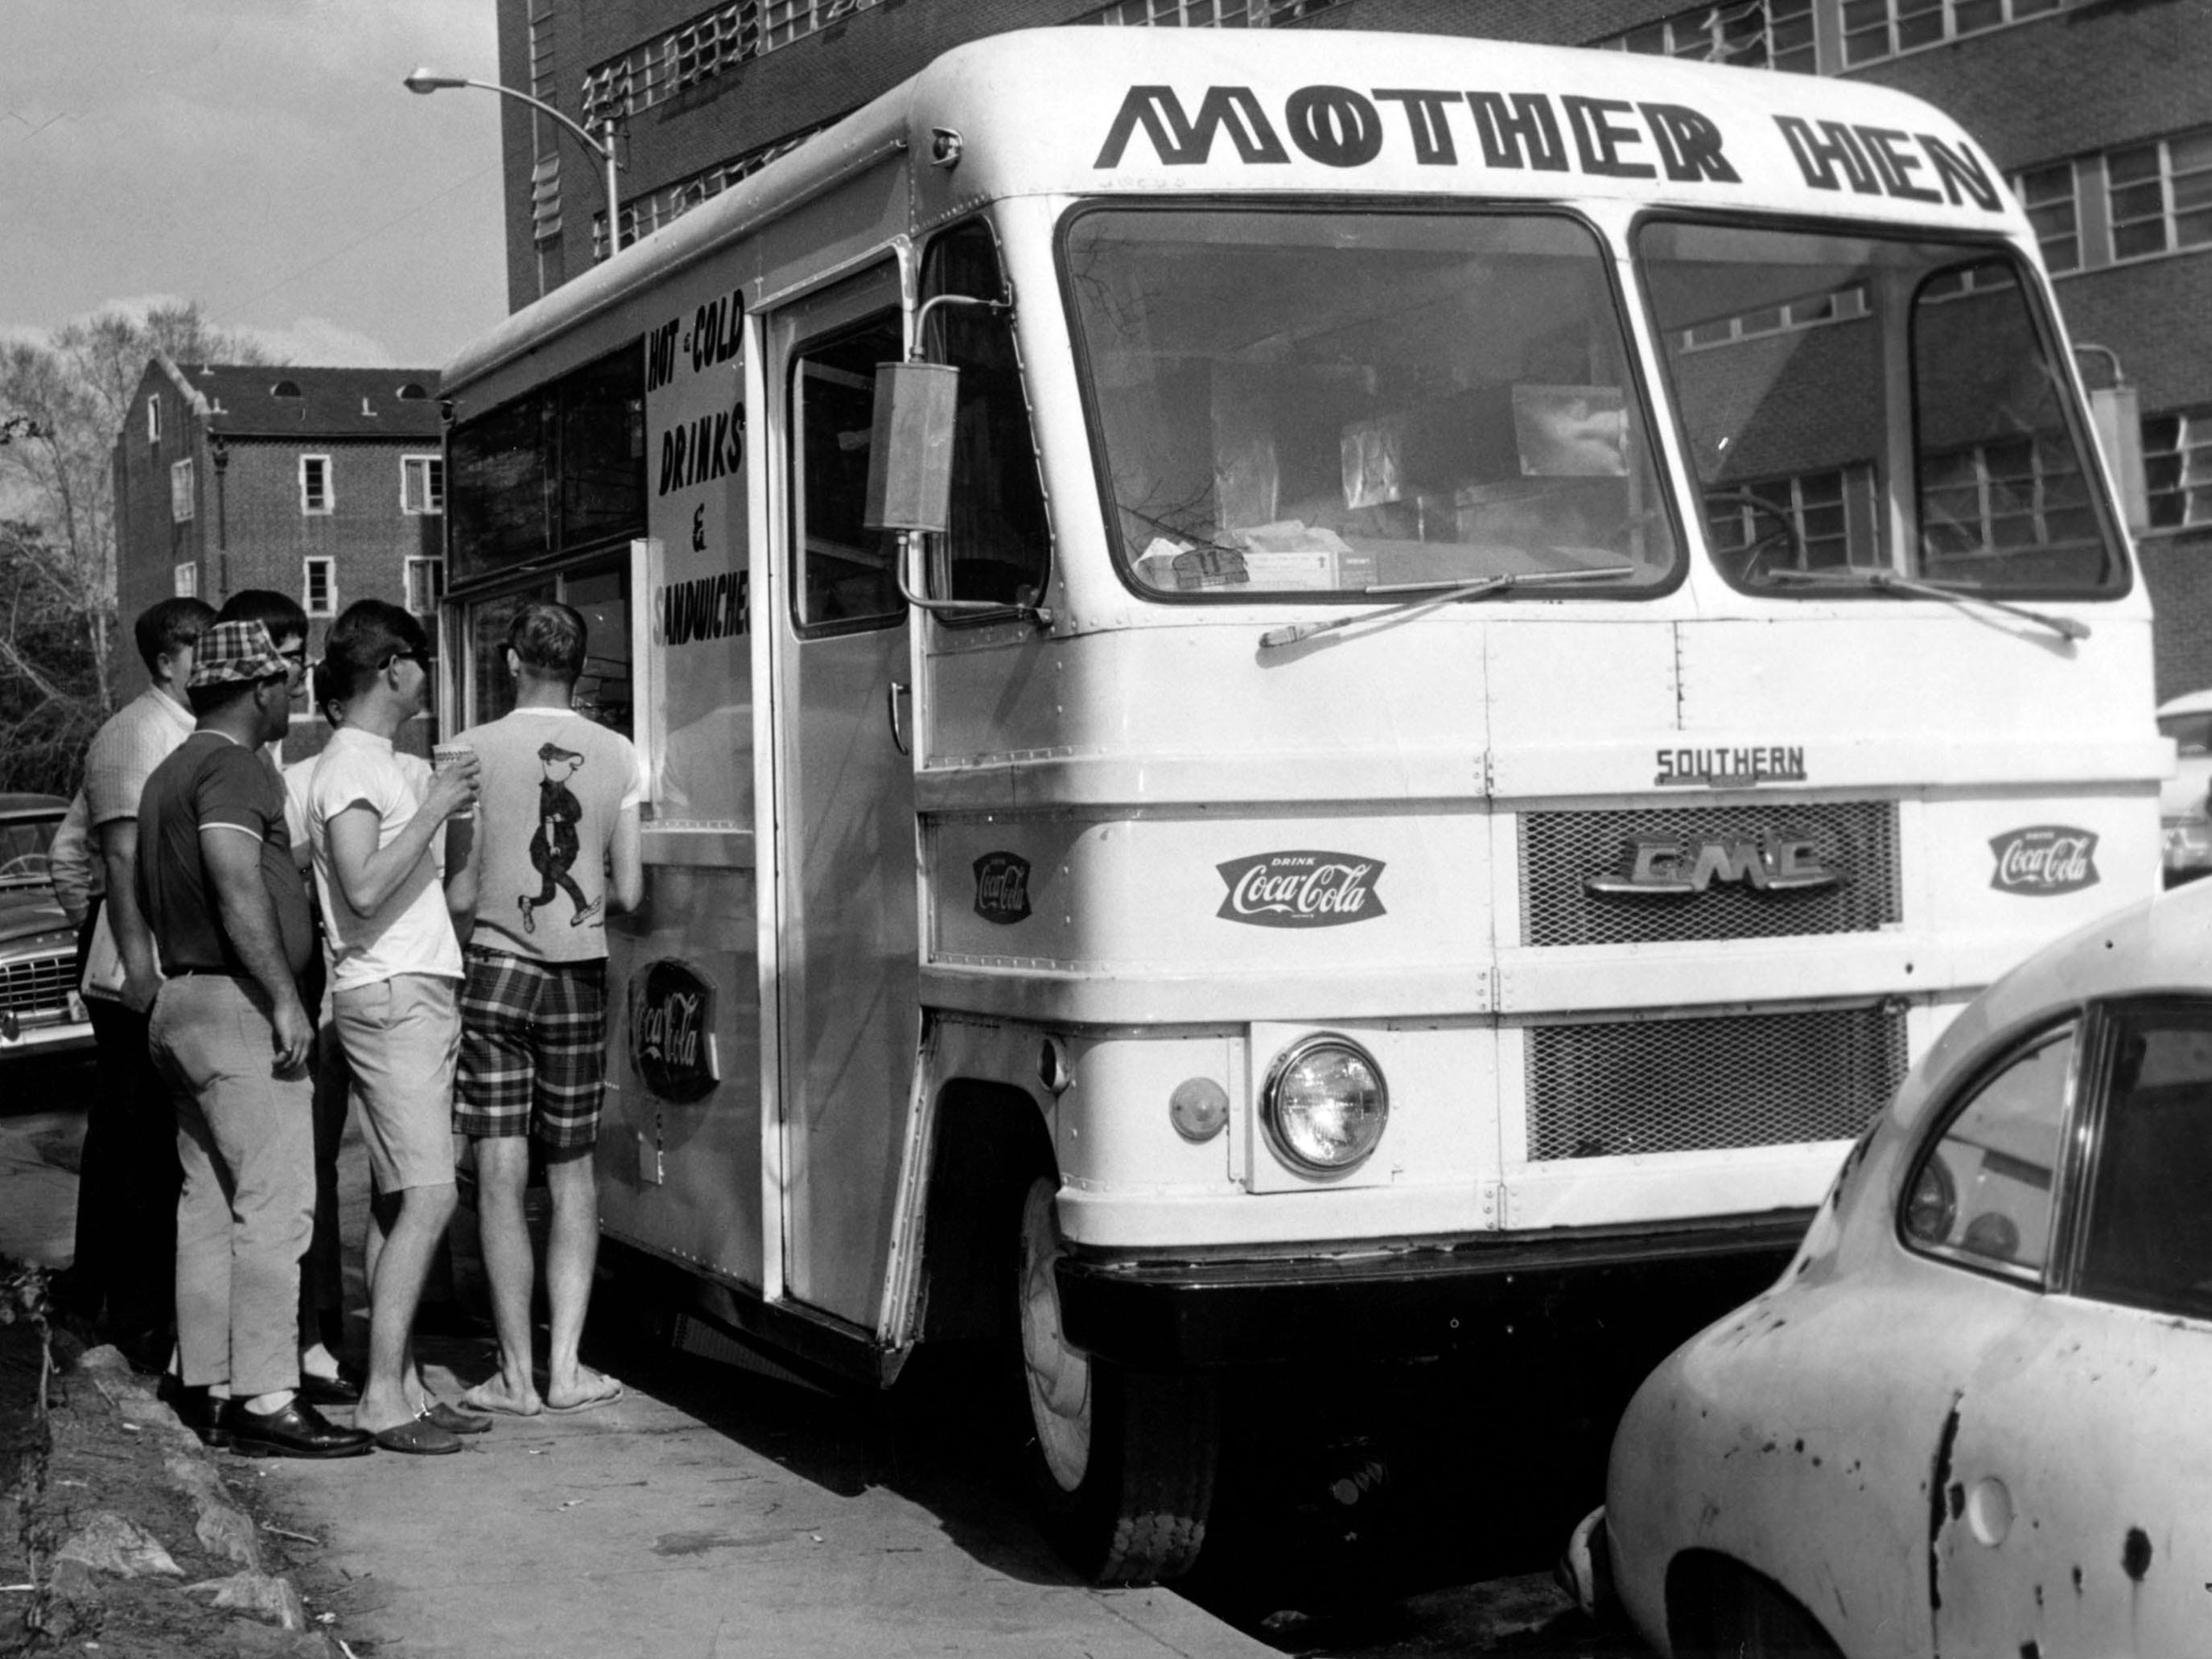 The Mother Hen food truck in the University of Tennessee campus in 1967. The truck was owned by Bill Captain.